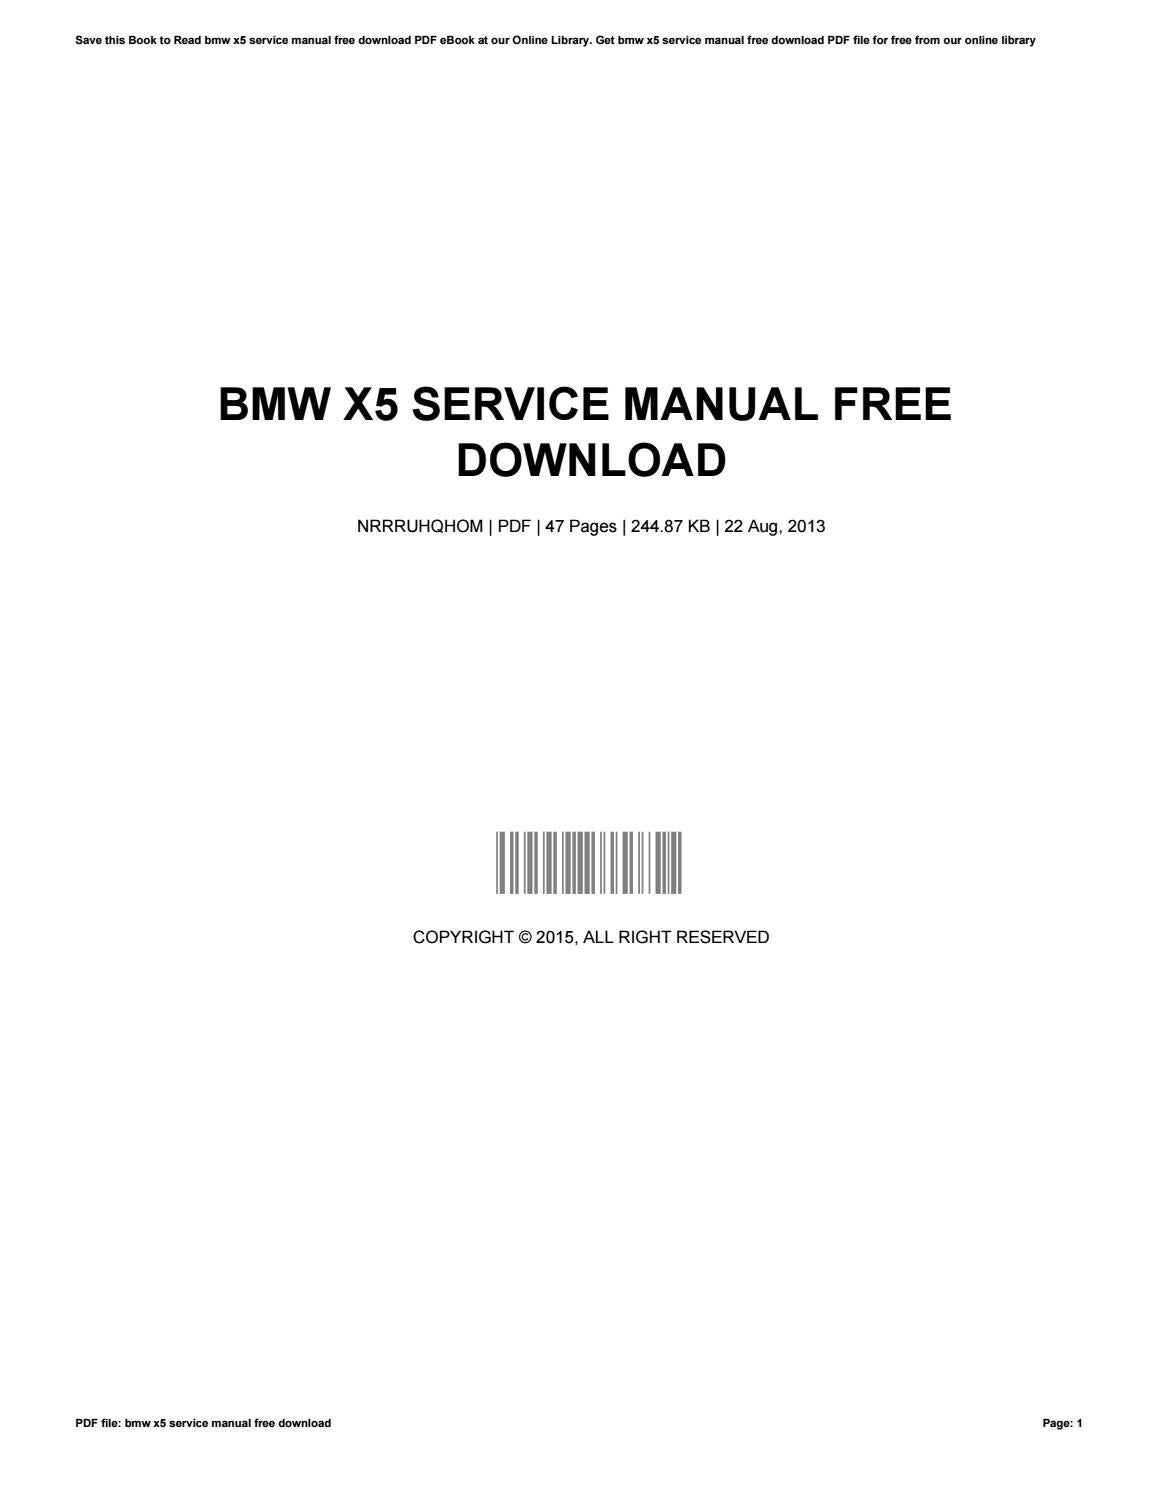 Download 2007 2008 2009 bmw x5 factory repair manual youtube.